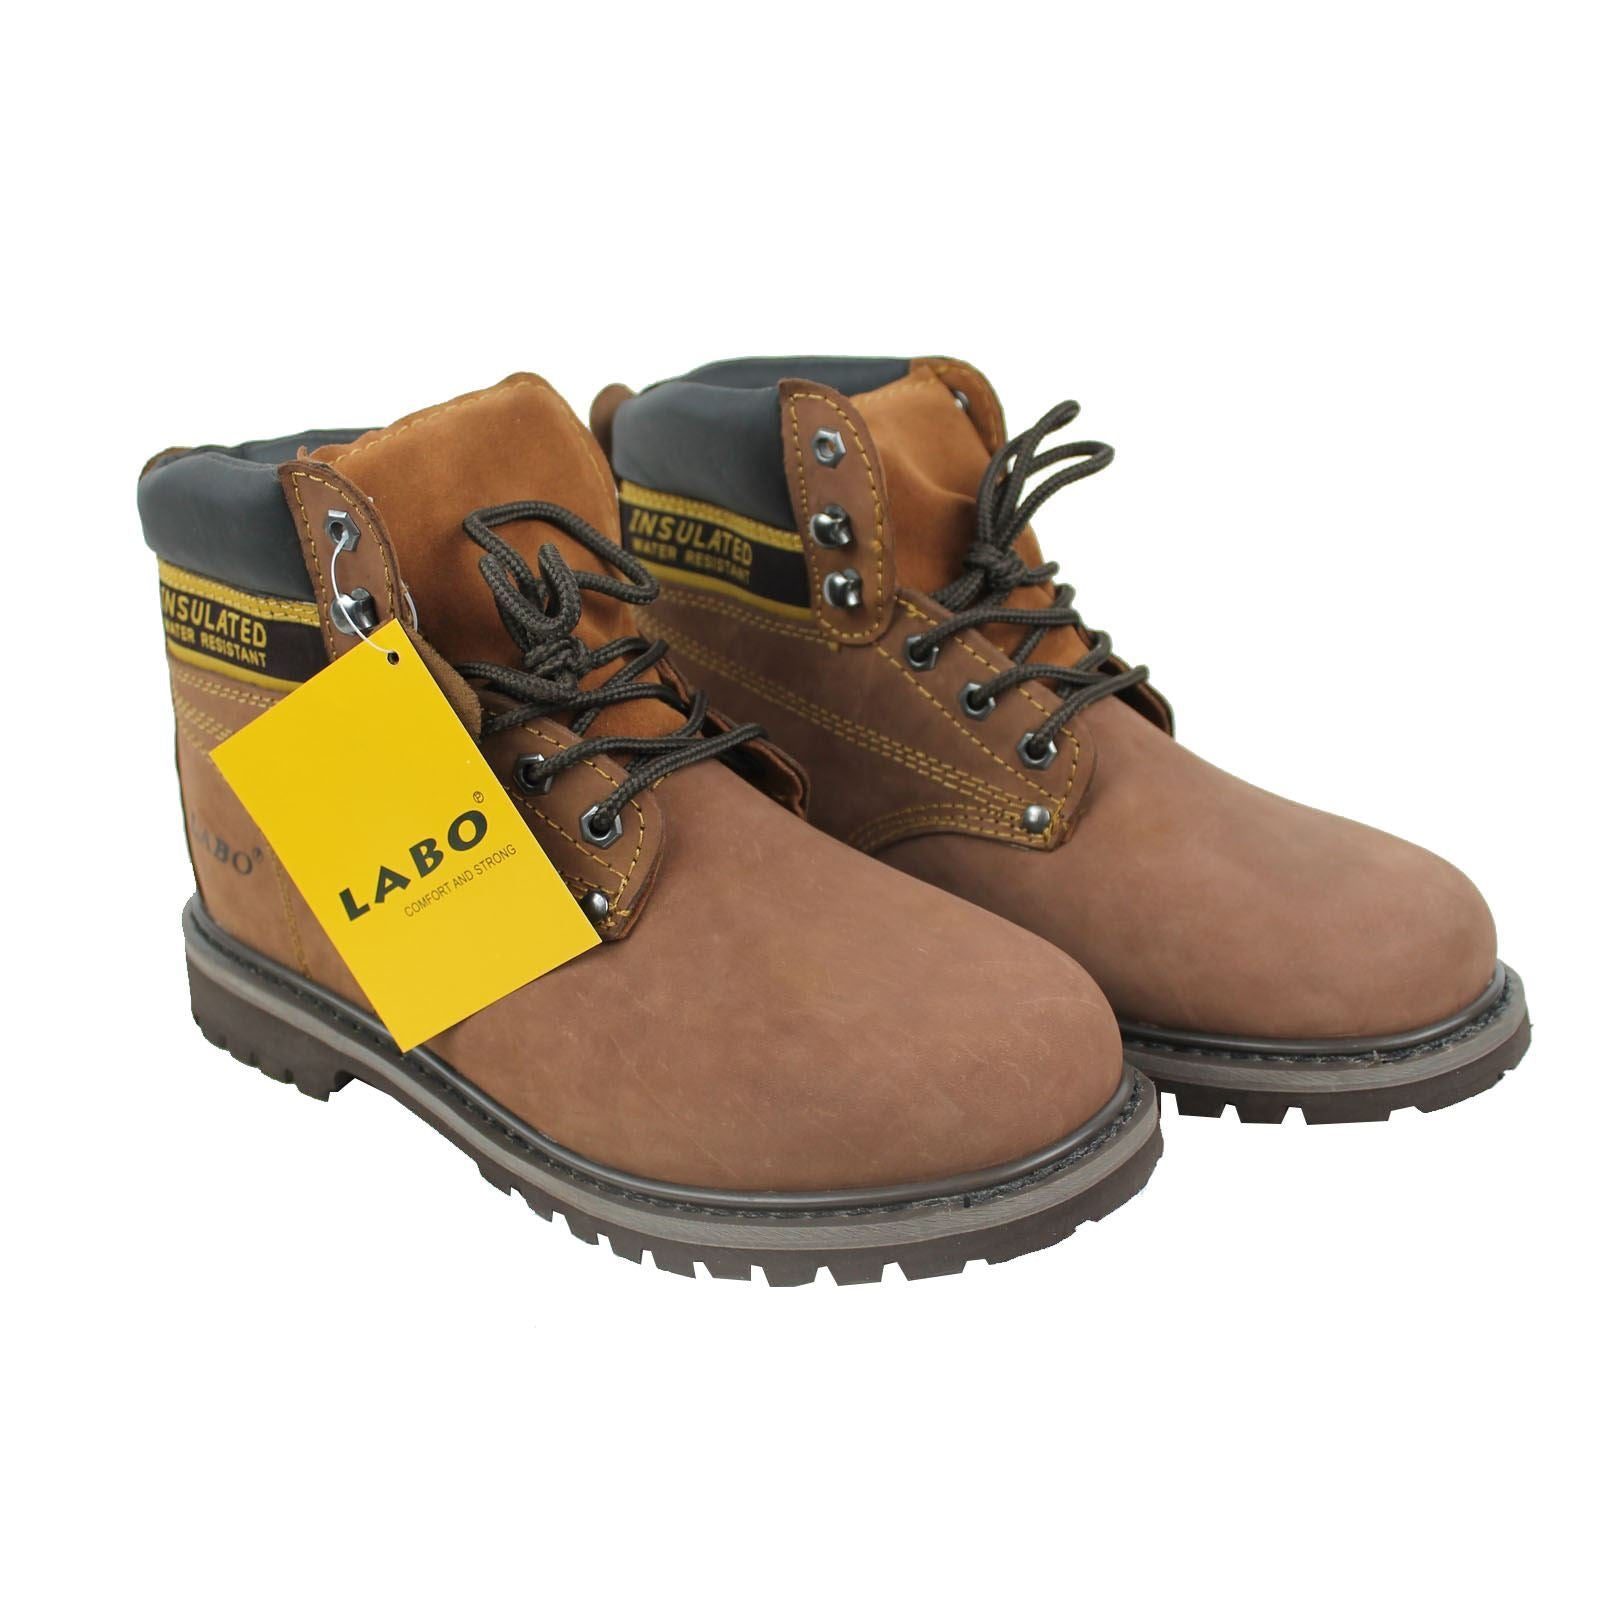 Wholesale Men's Shoes Work BOOTS Lace Up Toe Protection NE53